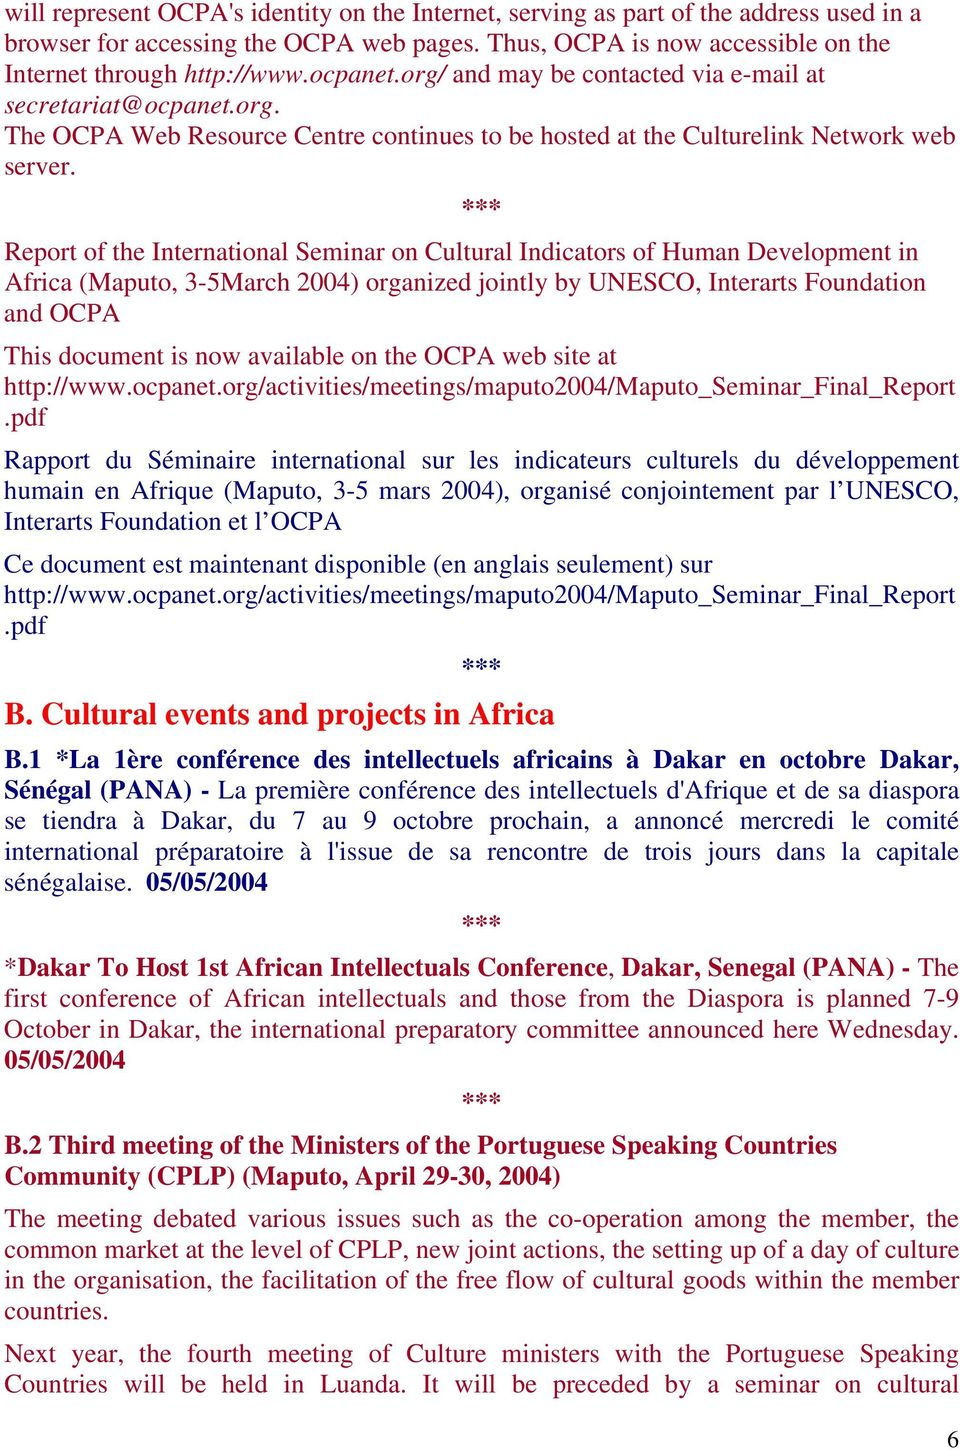 Report of the International Seminar on Cultural Indicators of Human Development in Africa (Maputo, 3-5March 2004) organized jointly by UNESCO, Interarts Foundation and OCPA This document is now